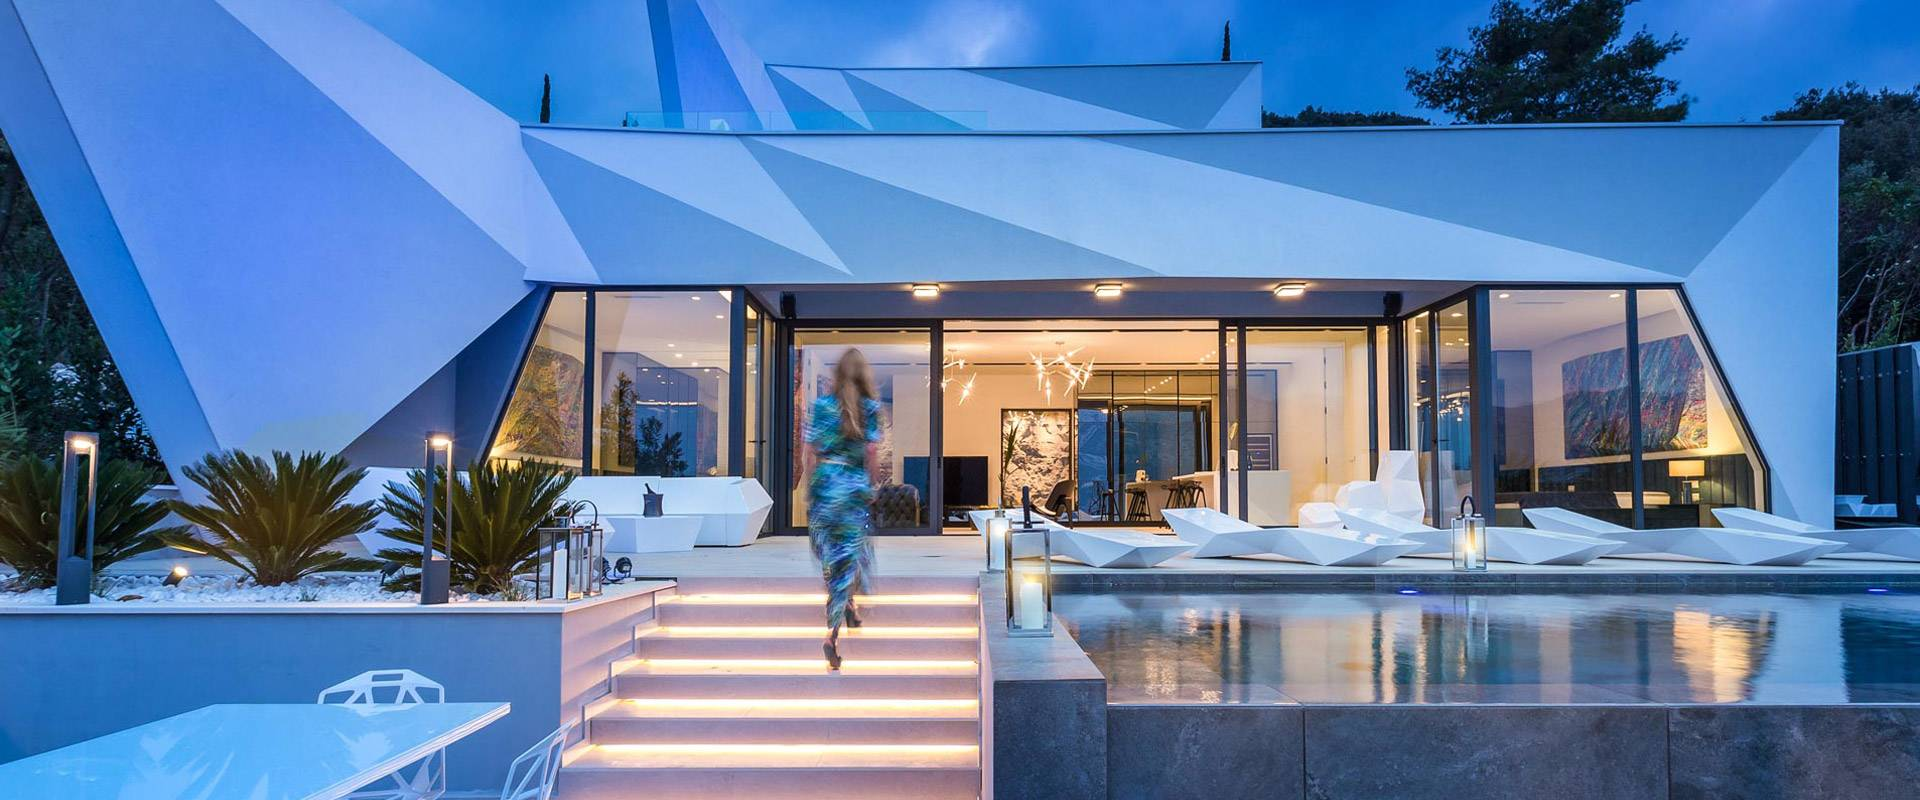 Luxury Heavens Villa Shiffon Croatia 3